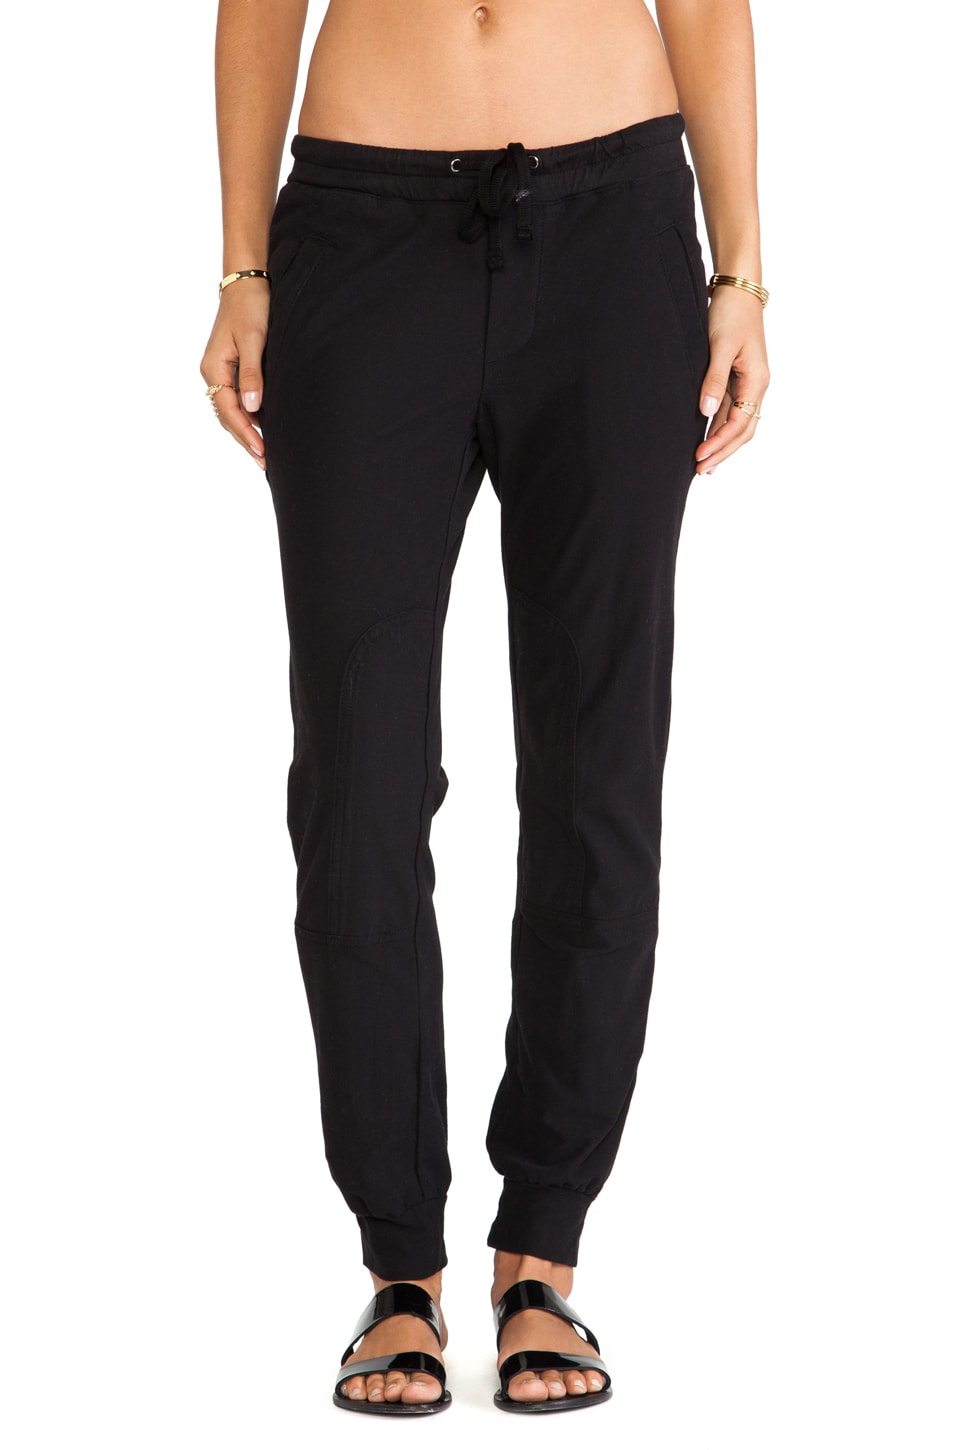 James Perse Stretch Twill Field Pant in Black